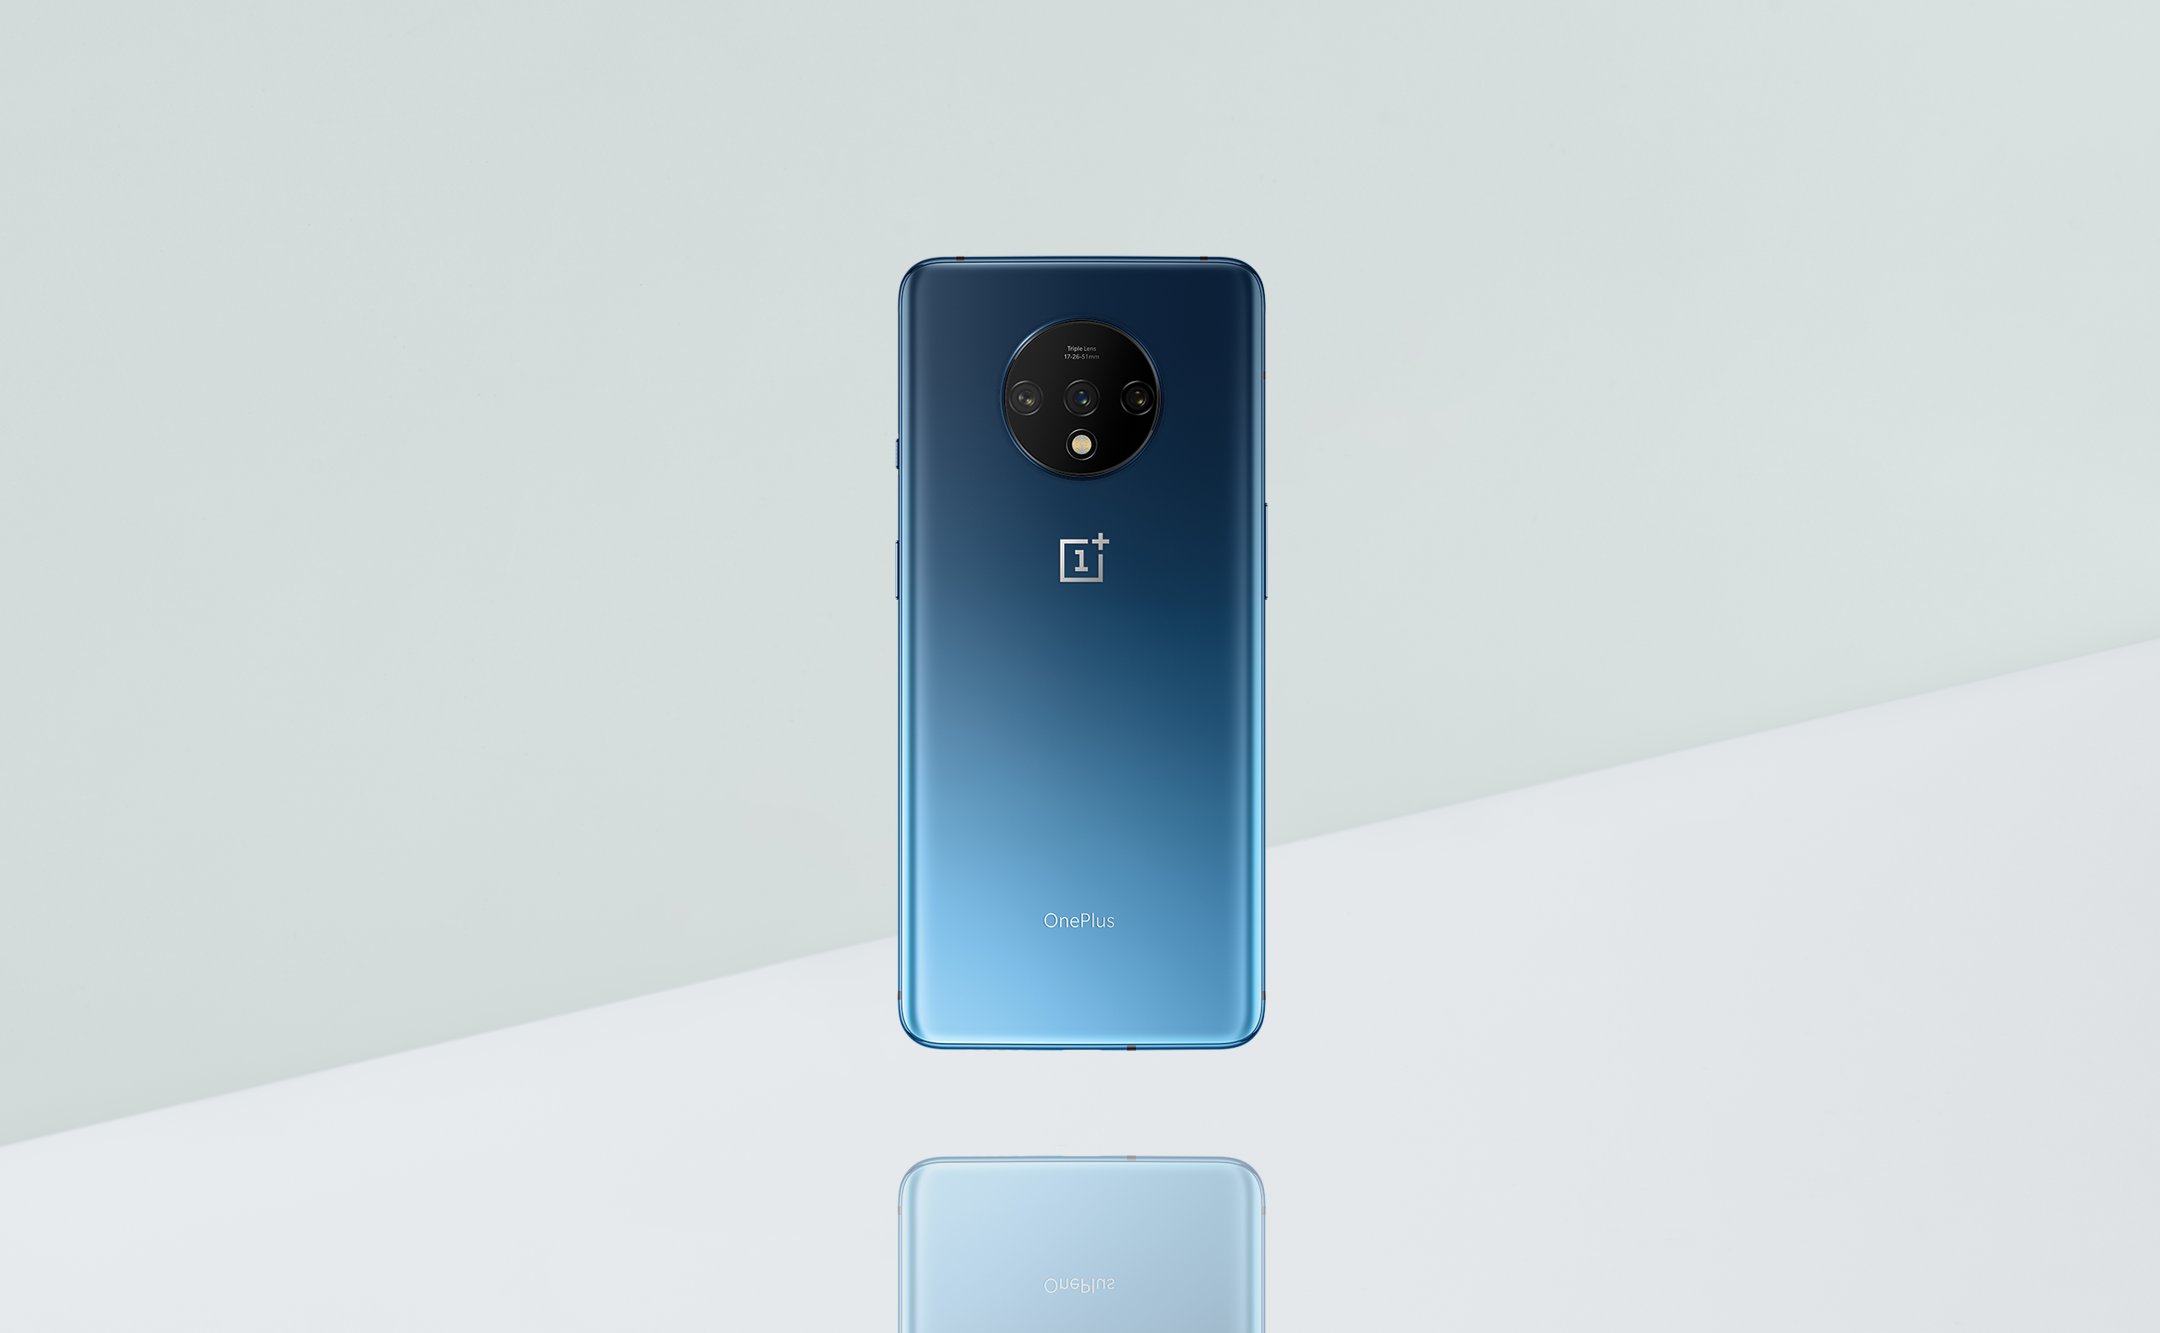 Oneplus Officially Reveals The Oneplus 7t Design